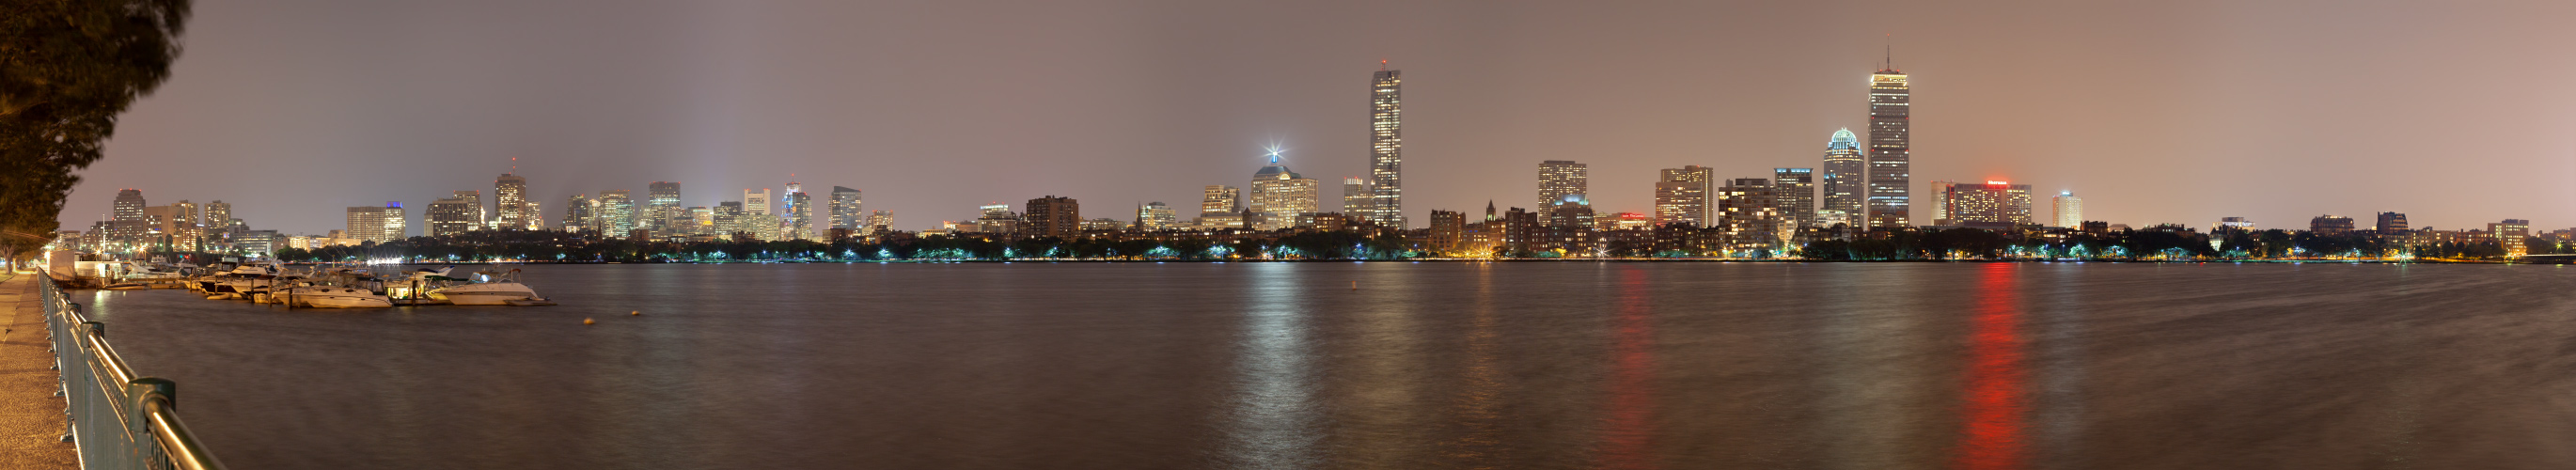 Boston - Night